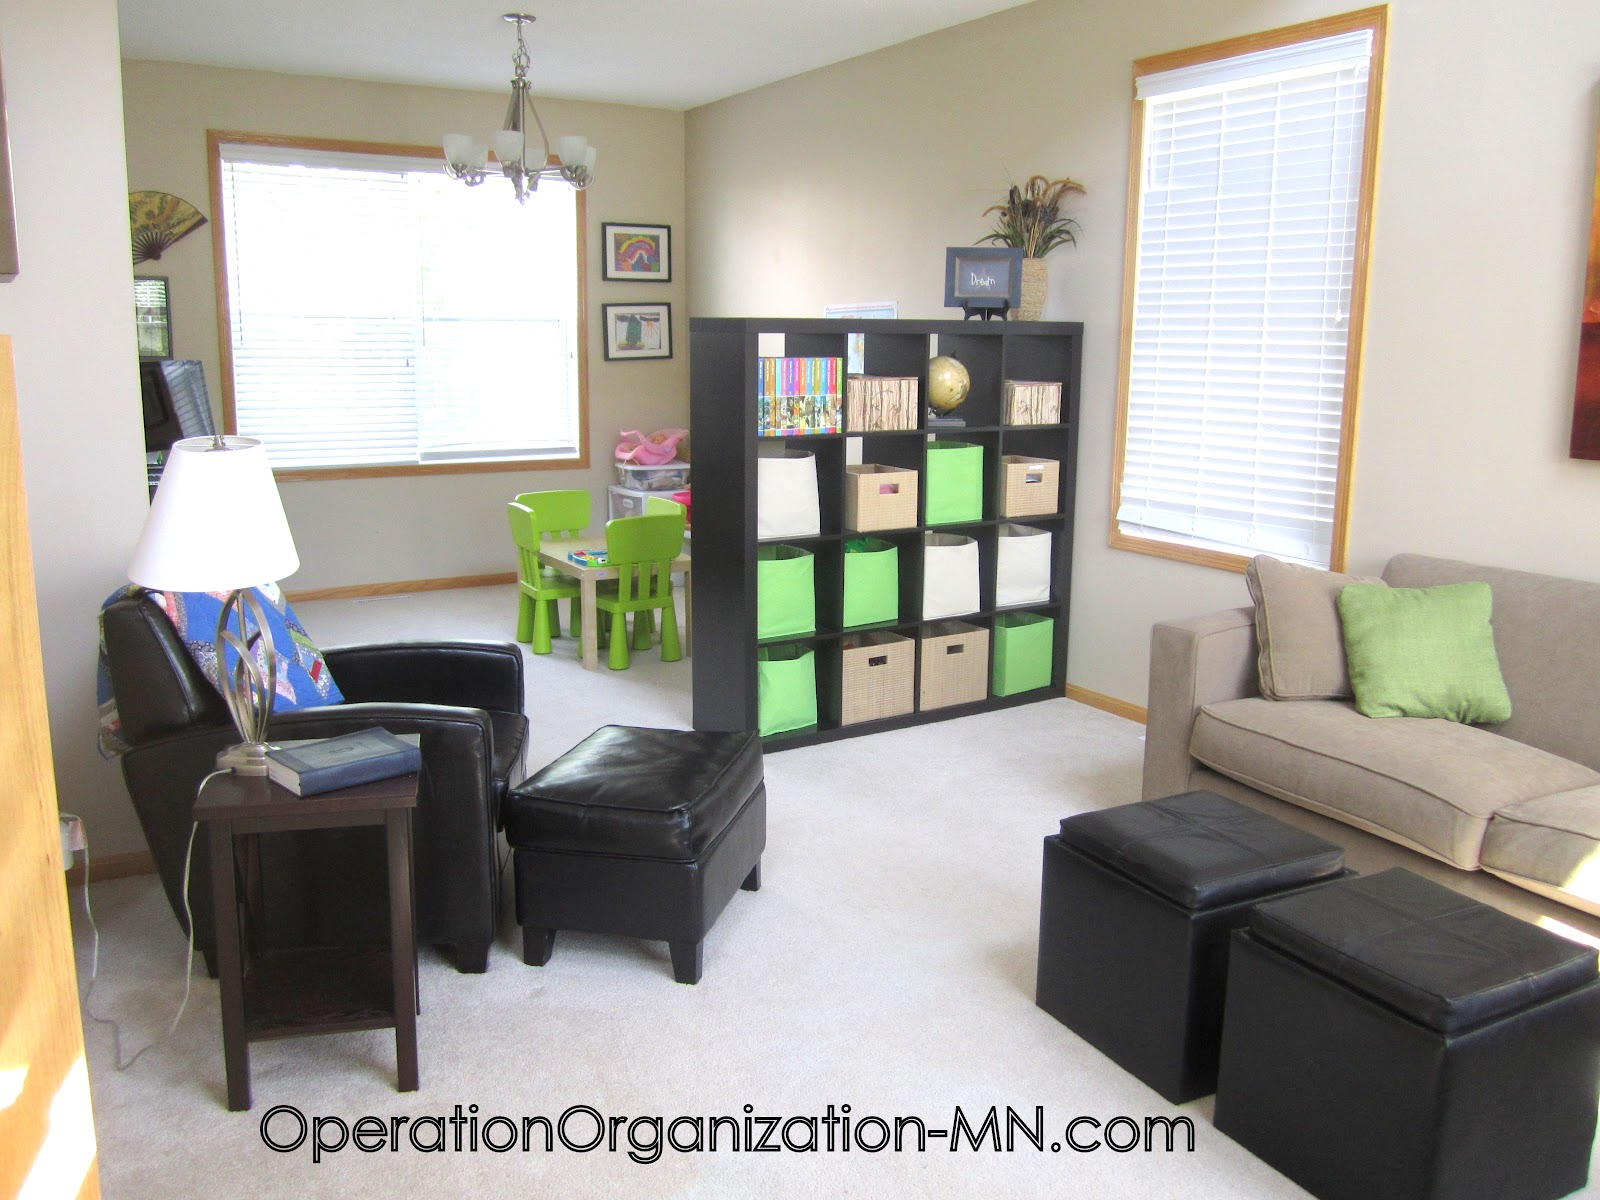 Operation Organization Professional Organizer Peachtree City